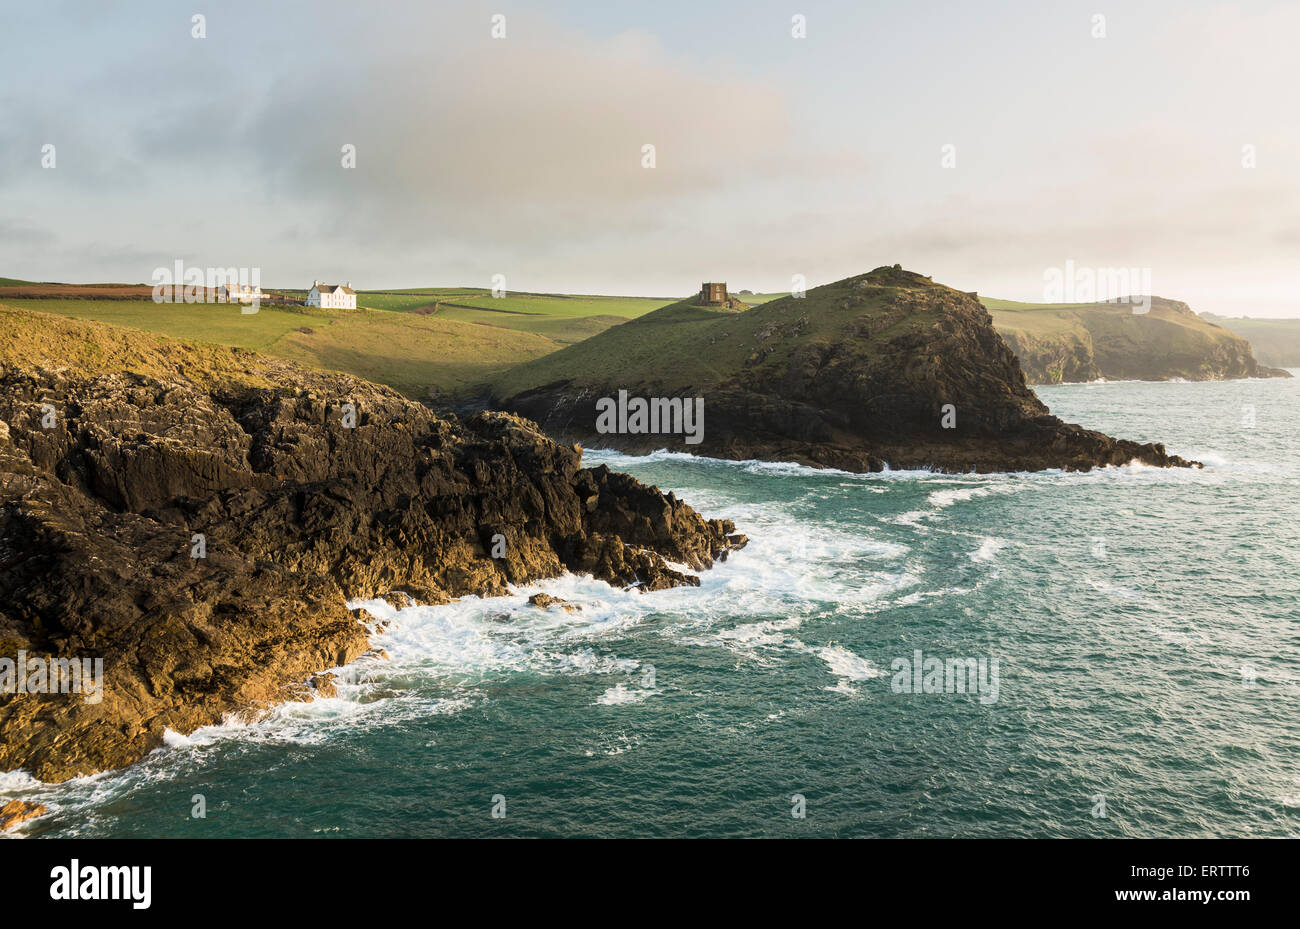 Doyden Castle on the cliffs at Port Quin near Port Issac, Atlantic coast, North Cornwall, UK in the late afternoon - Stock Image